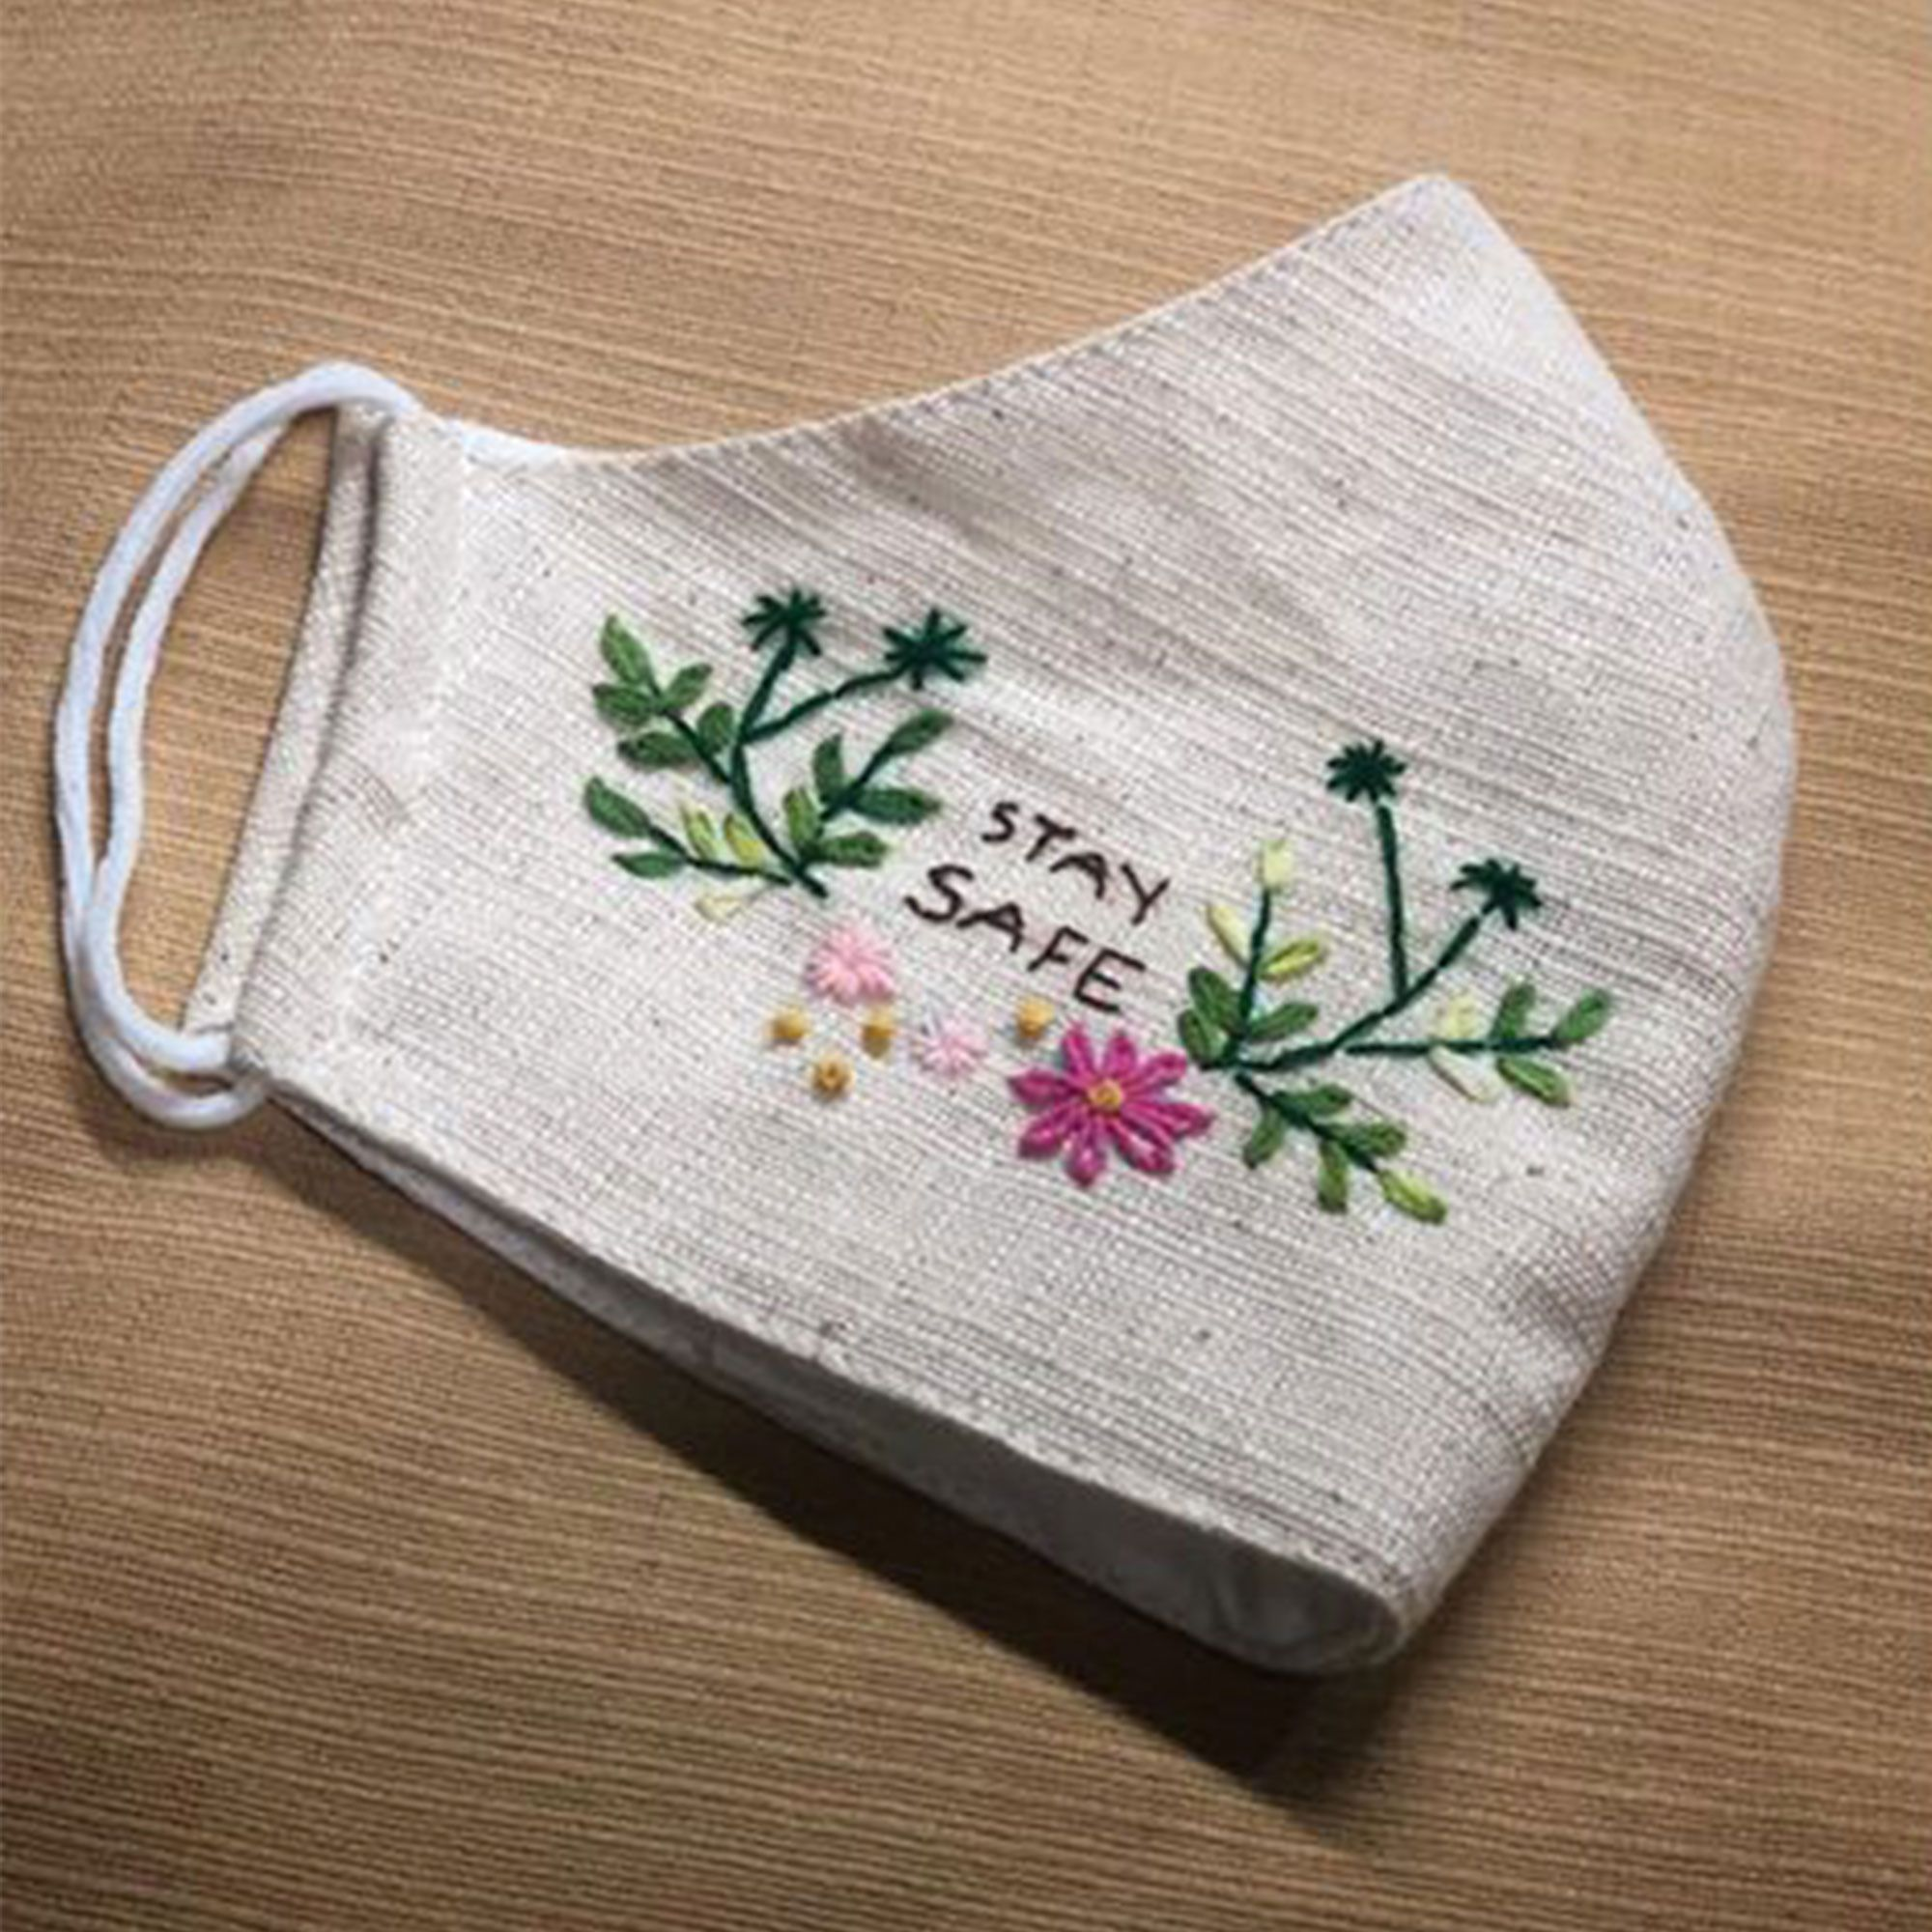 Hand Embroidery Cotton Fabric Face mask.Handmade by Thai ...